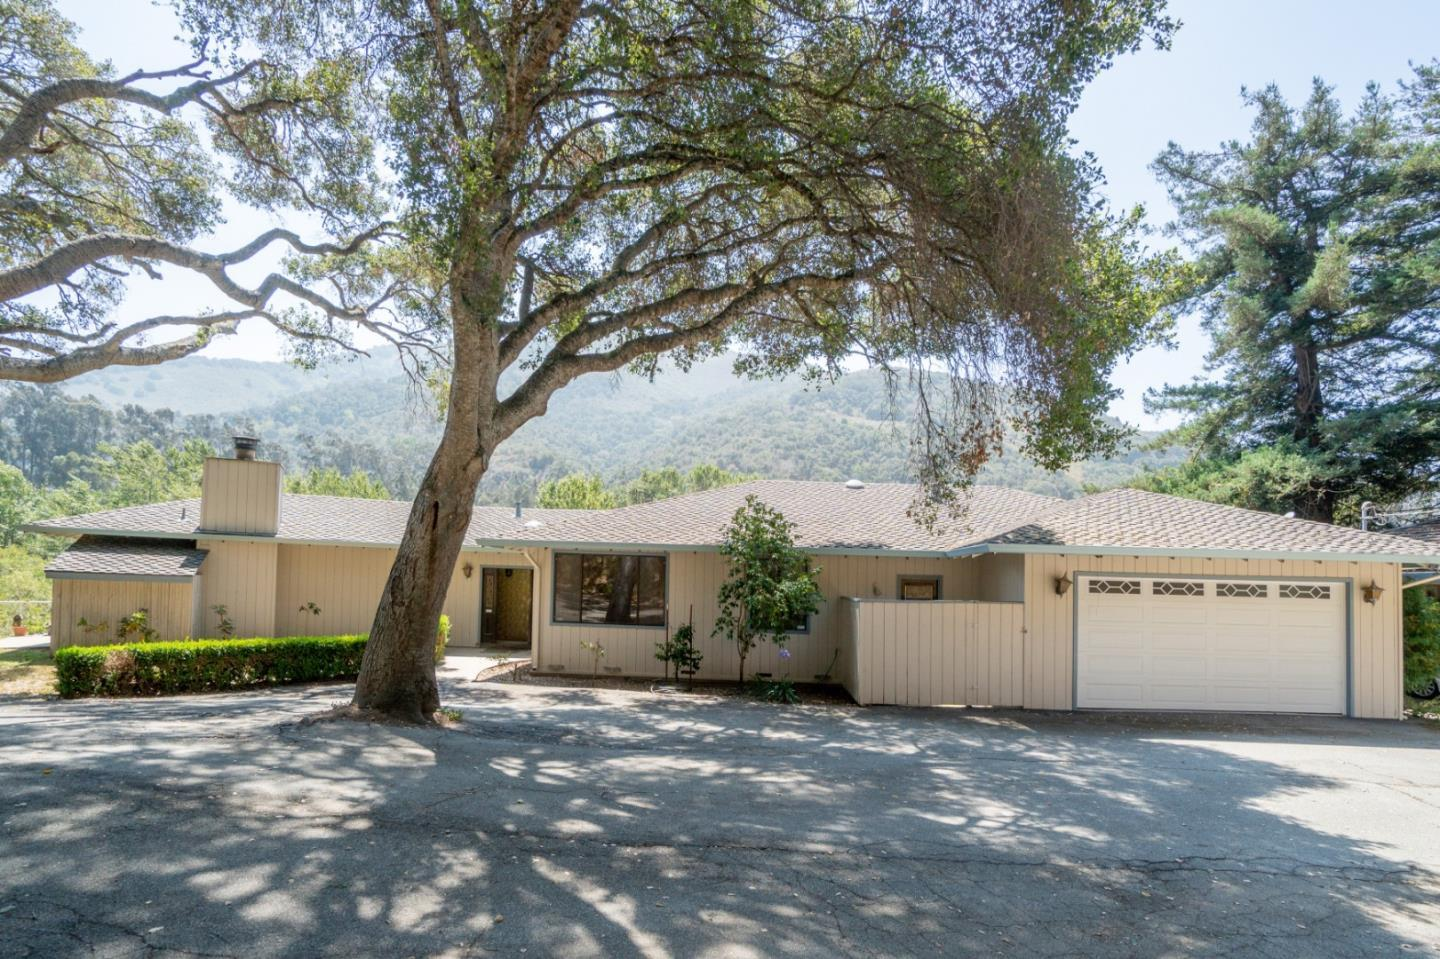 Property for sale at 800 W Carmel Valley RD, Carmel Valley,  California 93924